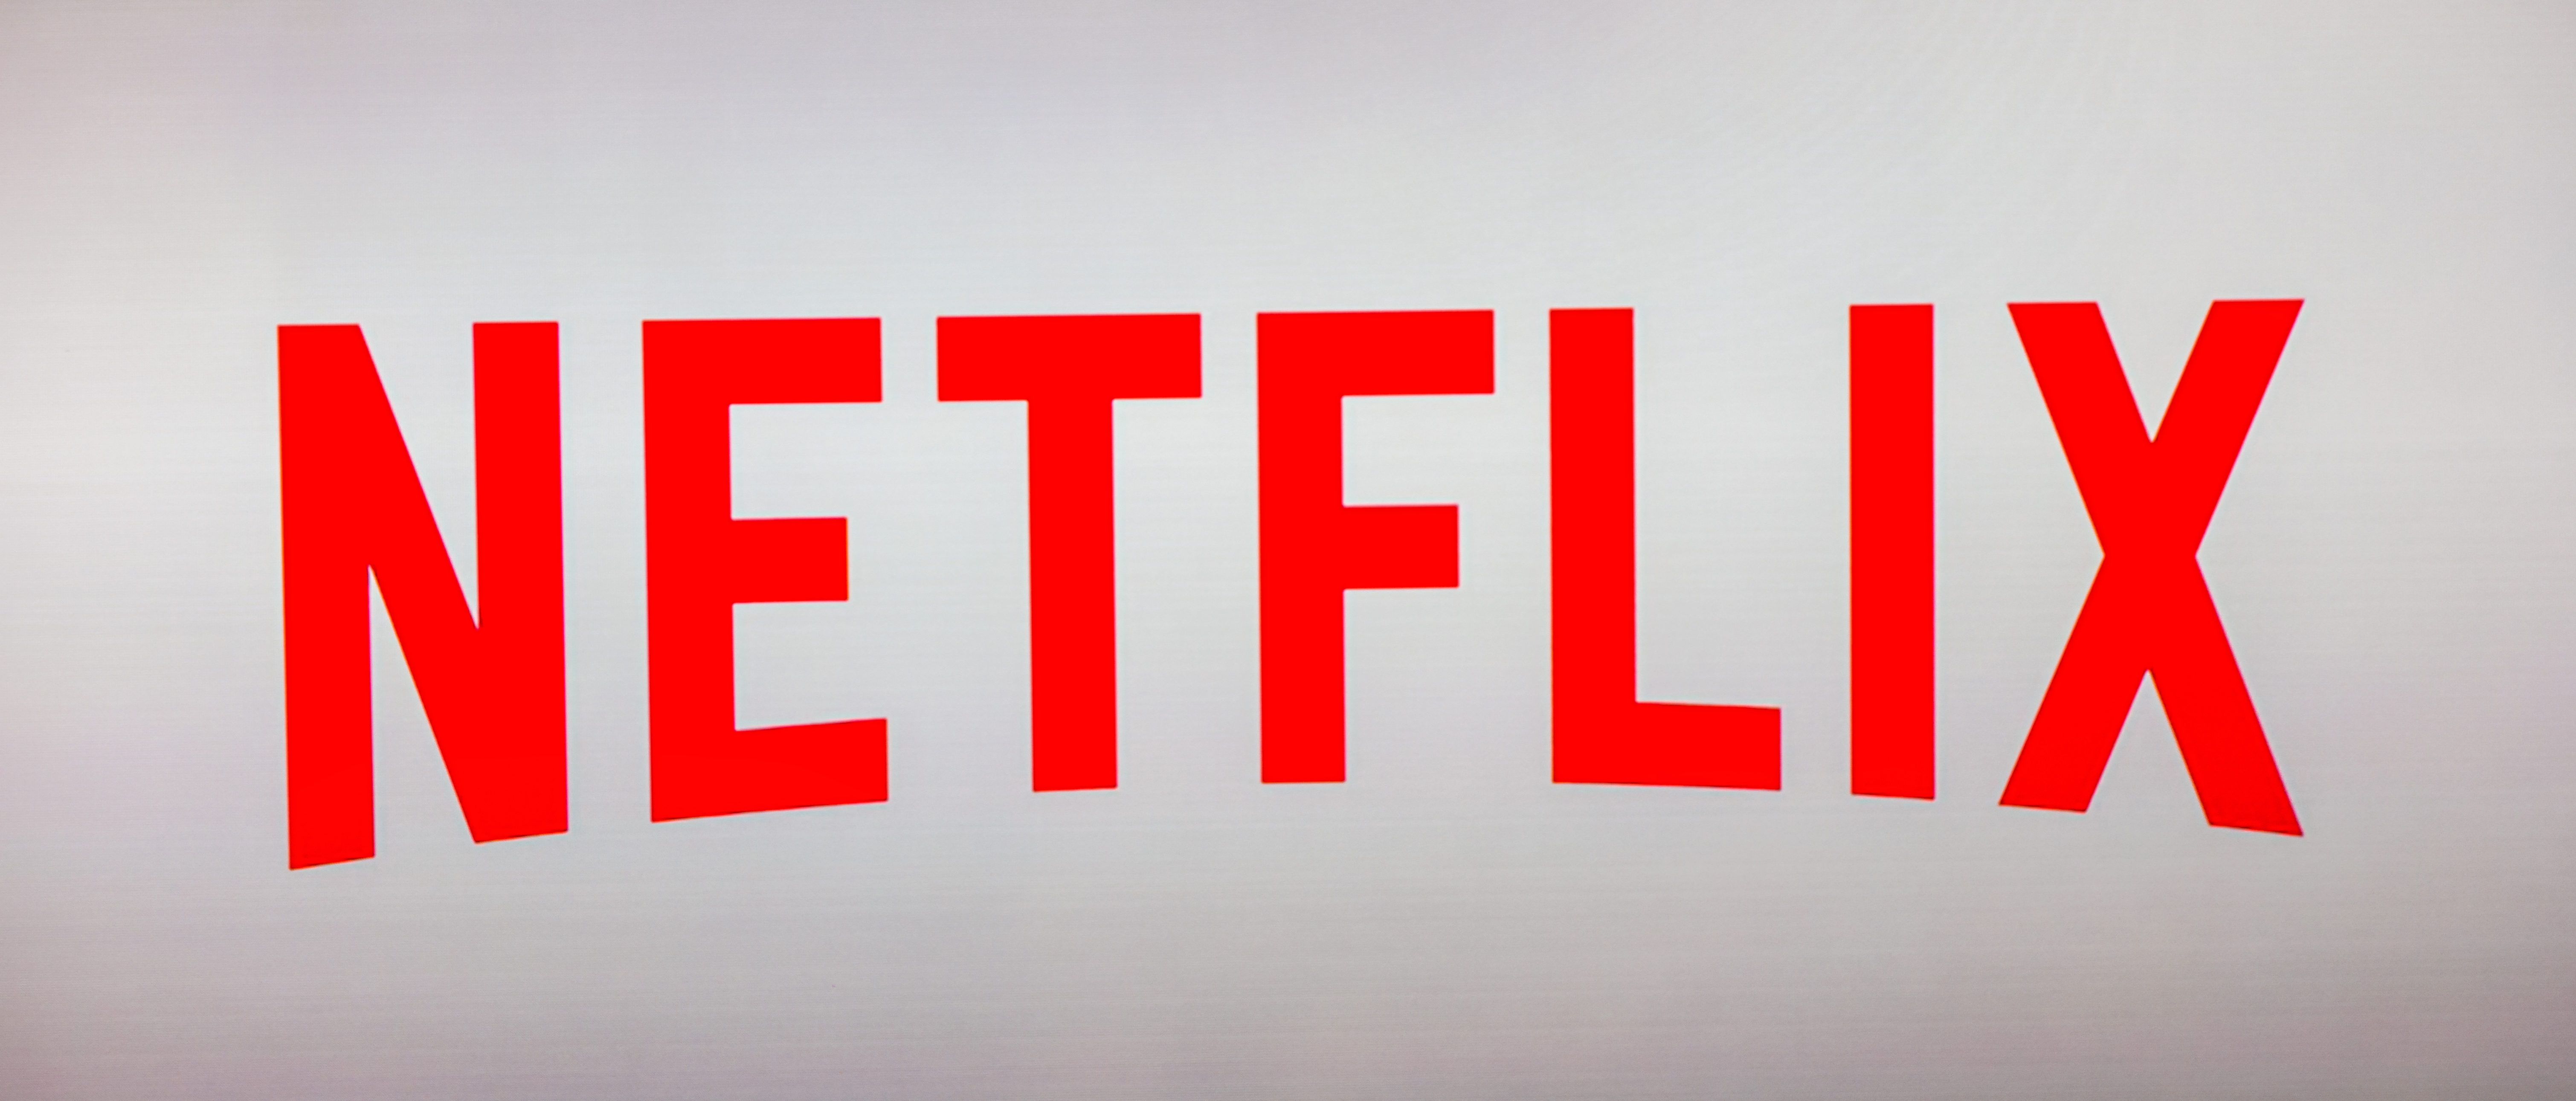 Netflix refuses to discuss how to handle suicides, Shutterstock r.classen